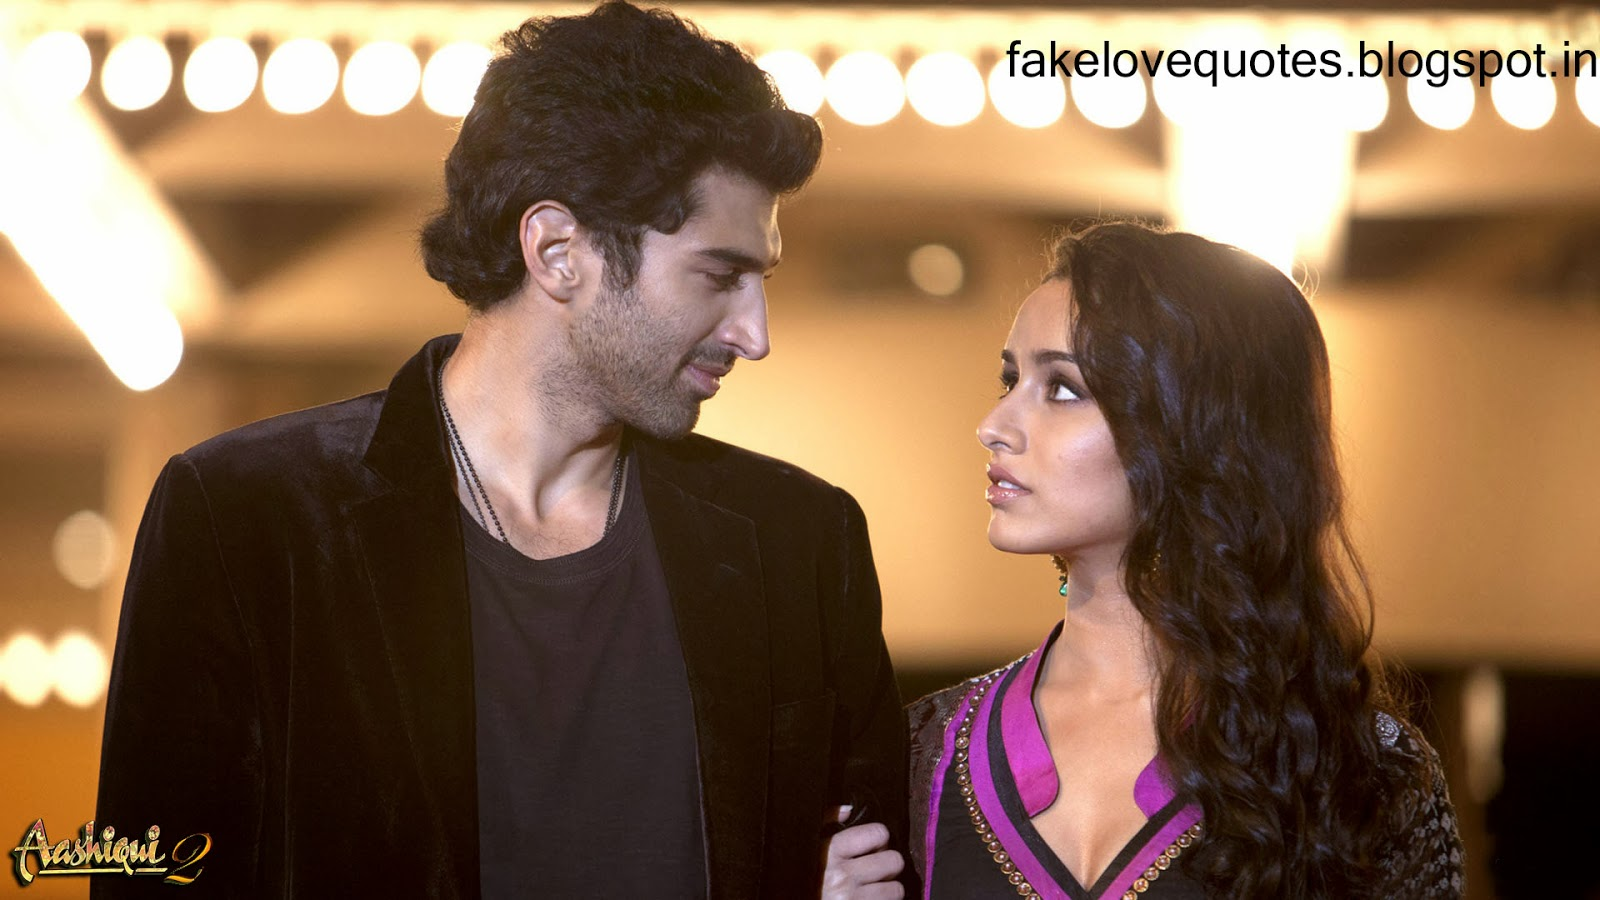 Aashiqui 2 Hd Wallpapers Mind Free And Motivation Fake Love